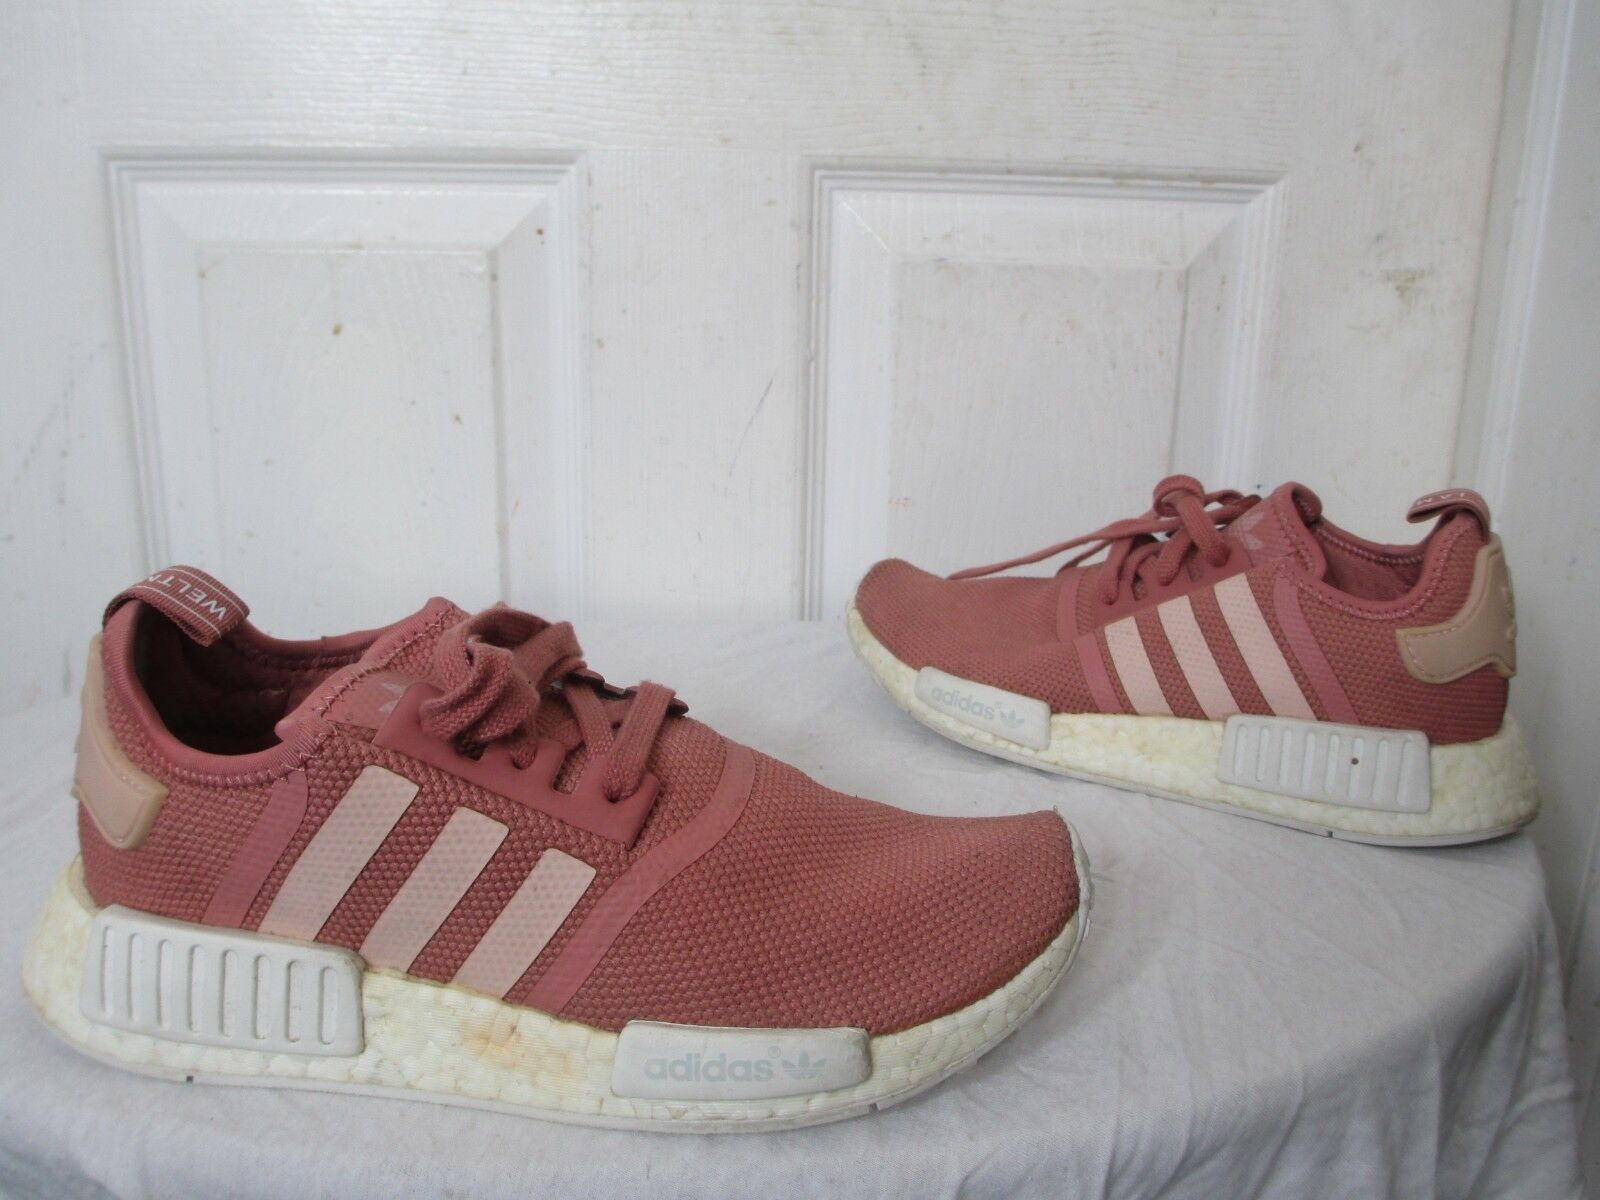 b025a6a6e97ab ADIDAS NMD R1 RUNNER W W W NOMAD WMNS PEACH PINK SALMON BOOST S76006 US 7 ½  USED